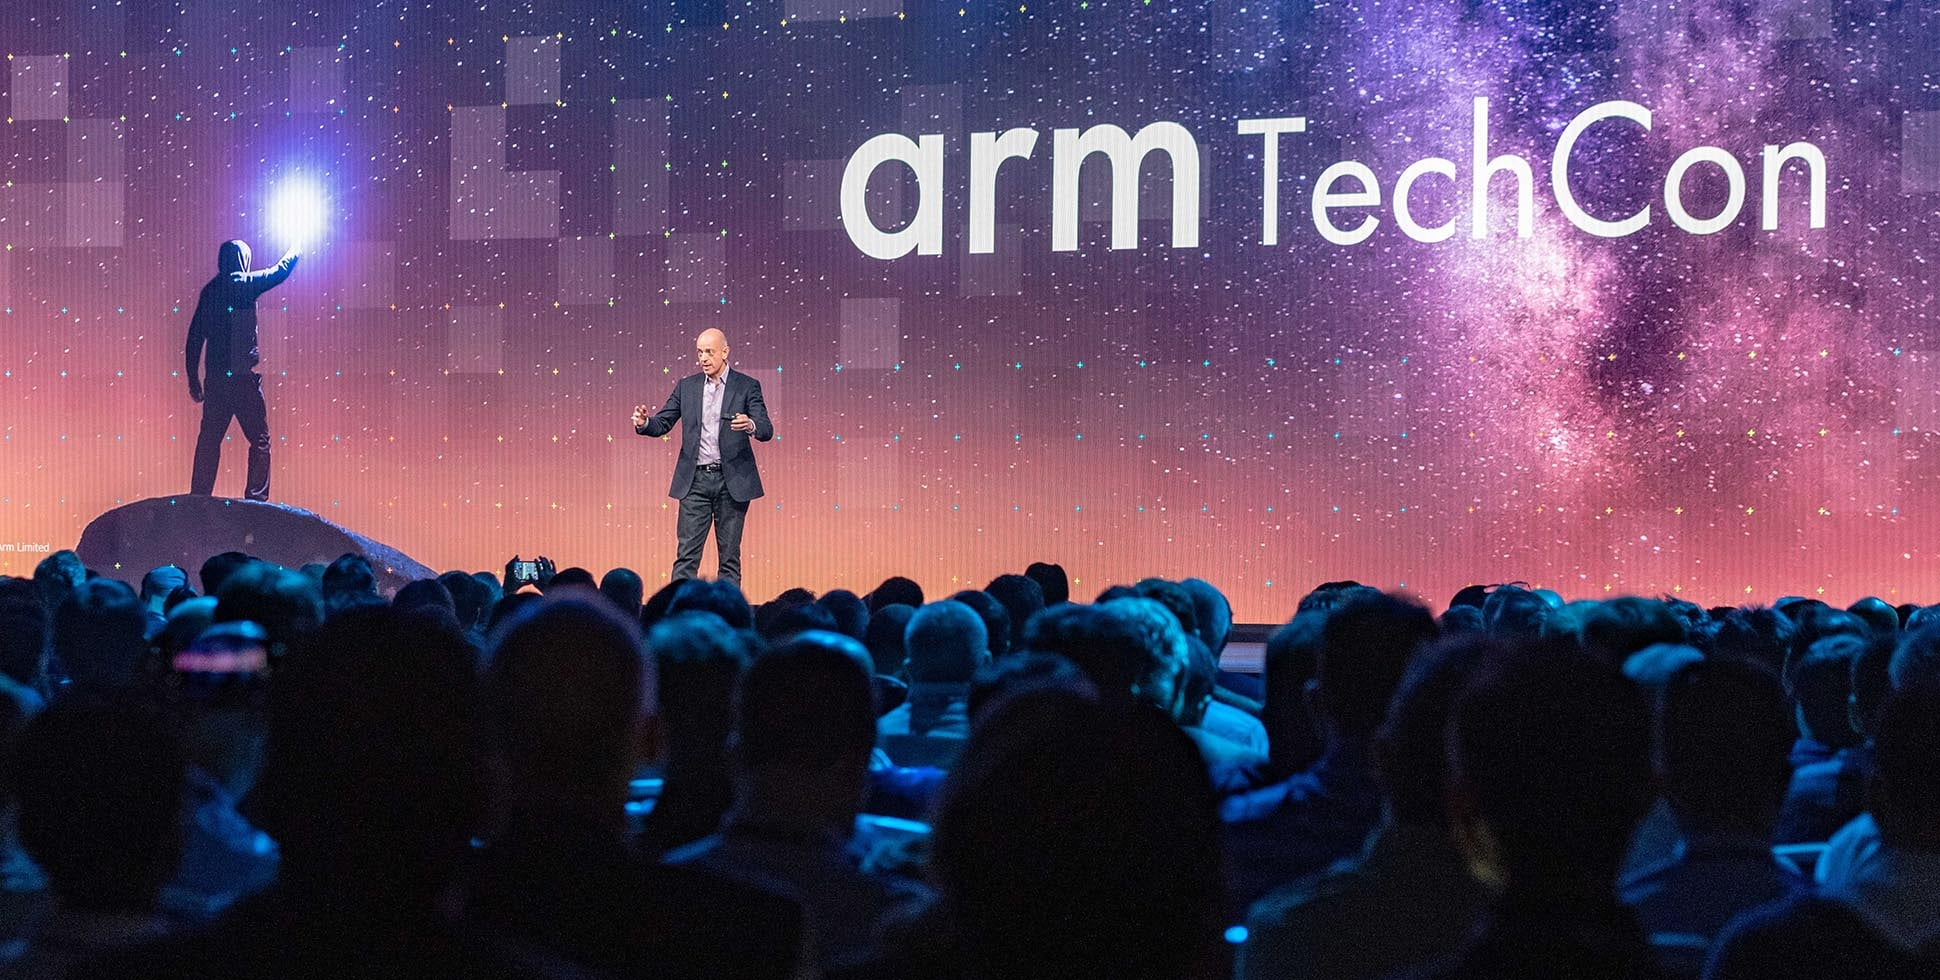 Arm Techcon: At the Heart of the Technology World